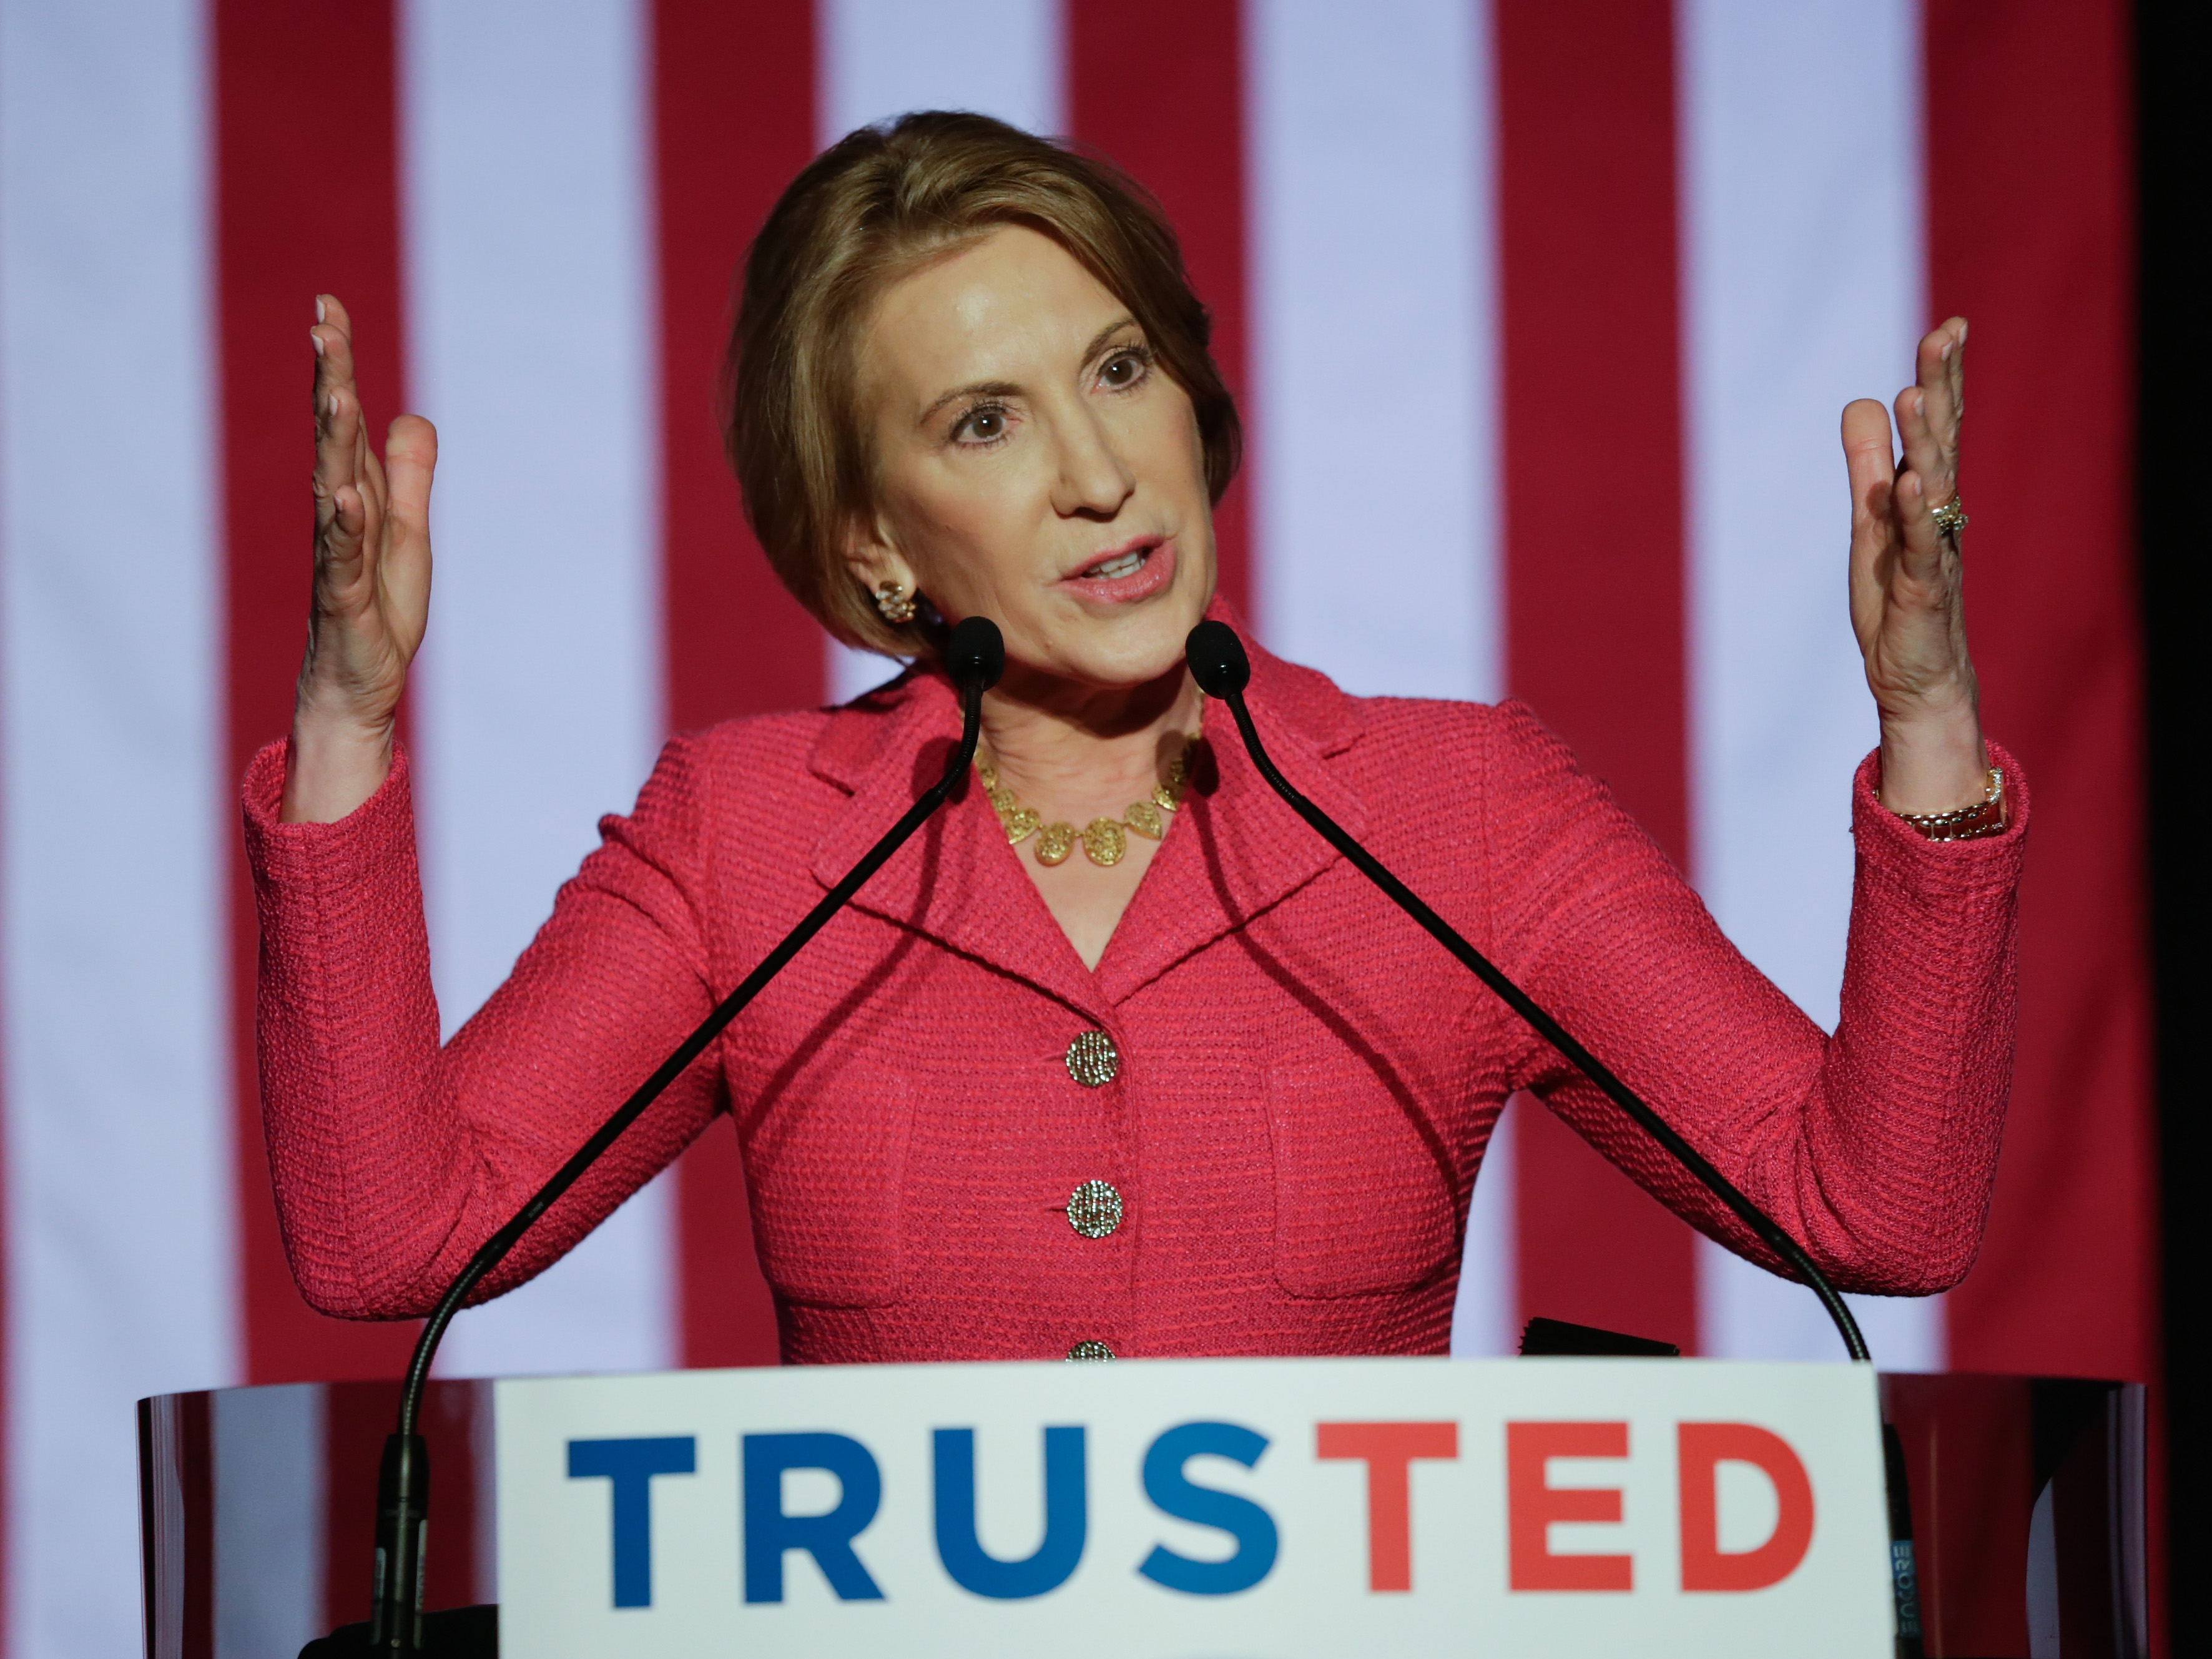 HOUSTON, TX - MARCH 15: Carly Fiorina speaks at a watch party for Republican presidential candidate Sen. Ted Cruz (R-TX) on March 15, 2016 in Houston, Texas. Cruz is in a tight race with Donald Trump in the Missouri GOP primary, while Trump took Florida, North Carolina, and Illinois. Gov. John Kasich won his home state of Ohio.